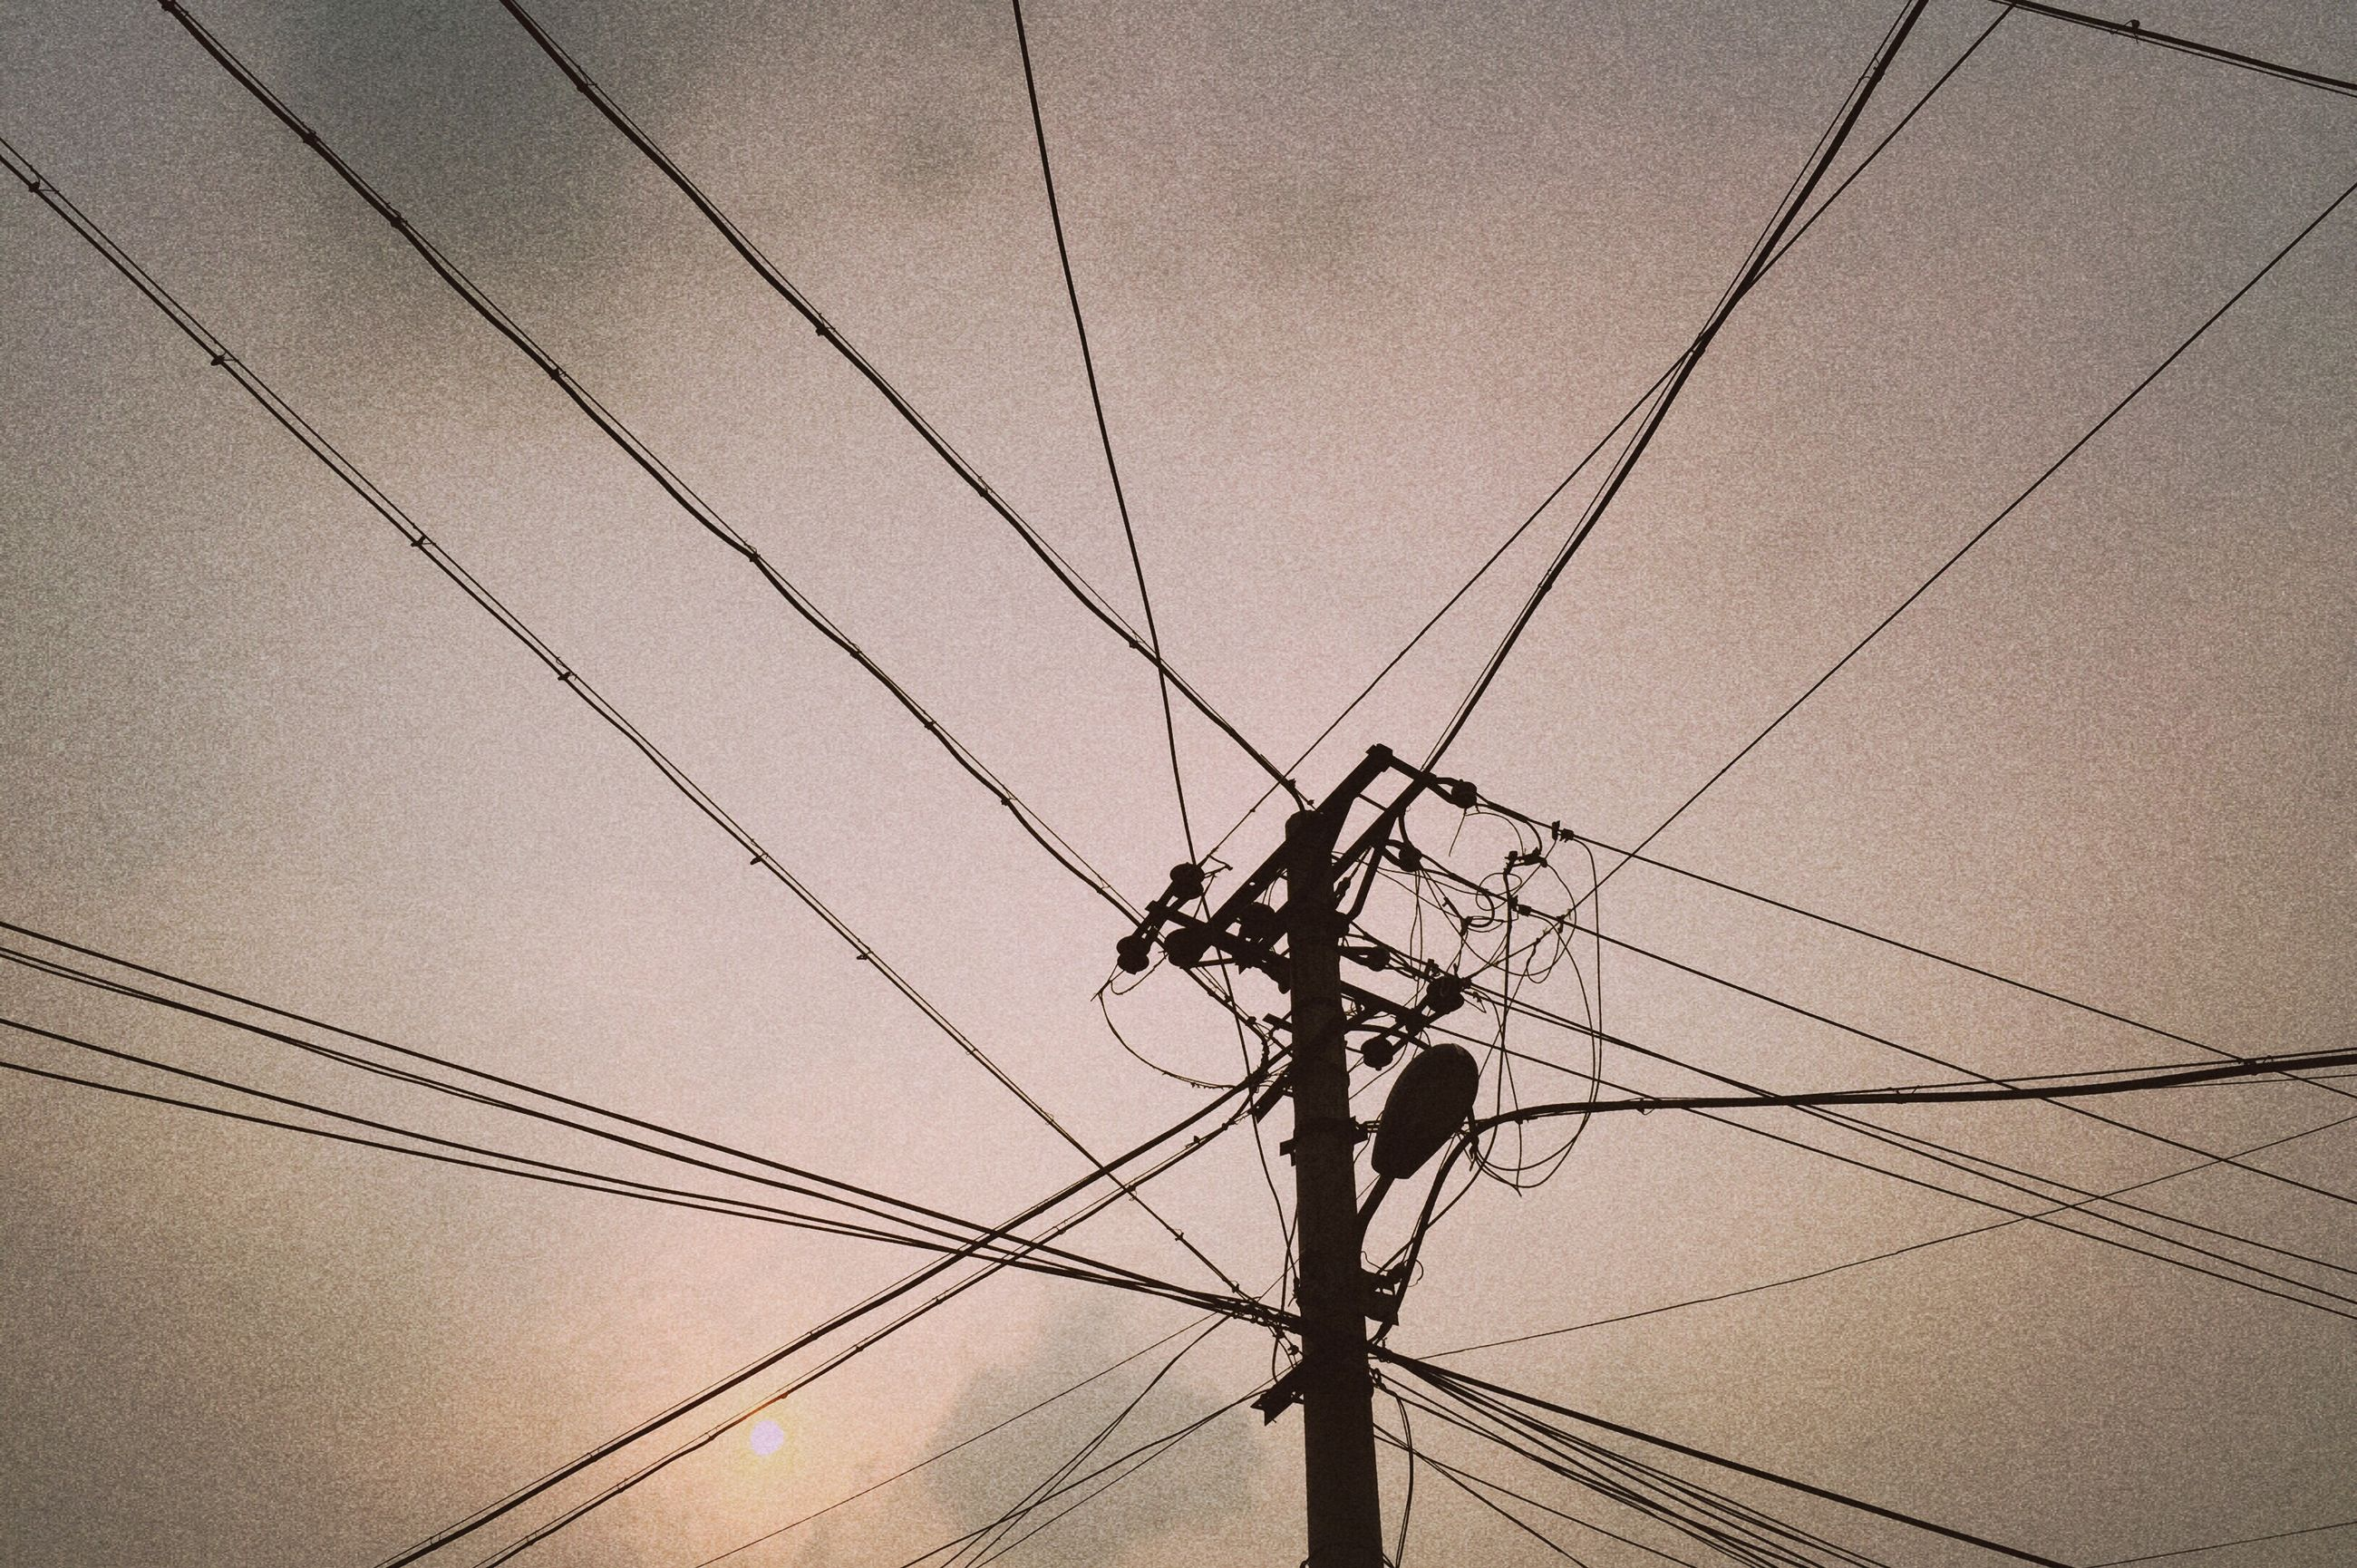 power line, power supply, electricity, low angle view, electricity pylon, connection, cable, fuel and power generation, technology, complexity, sky, power cable, silhouette, built structure, outdoors, no people, day, architecture, backgrounds, wire